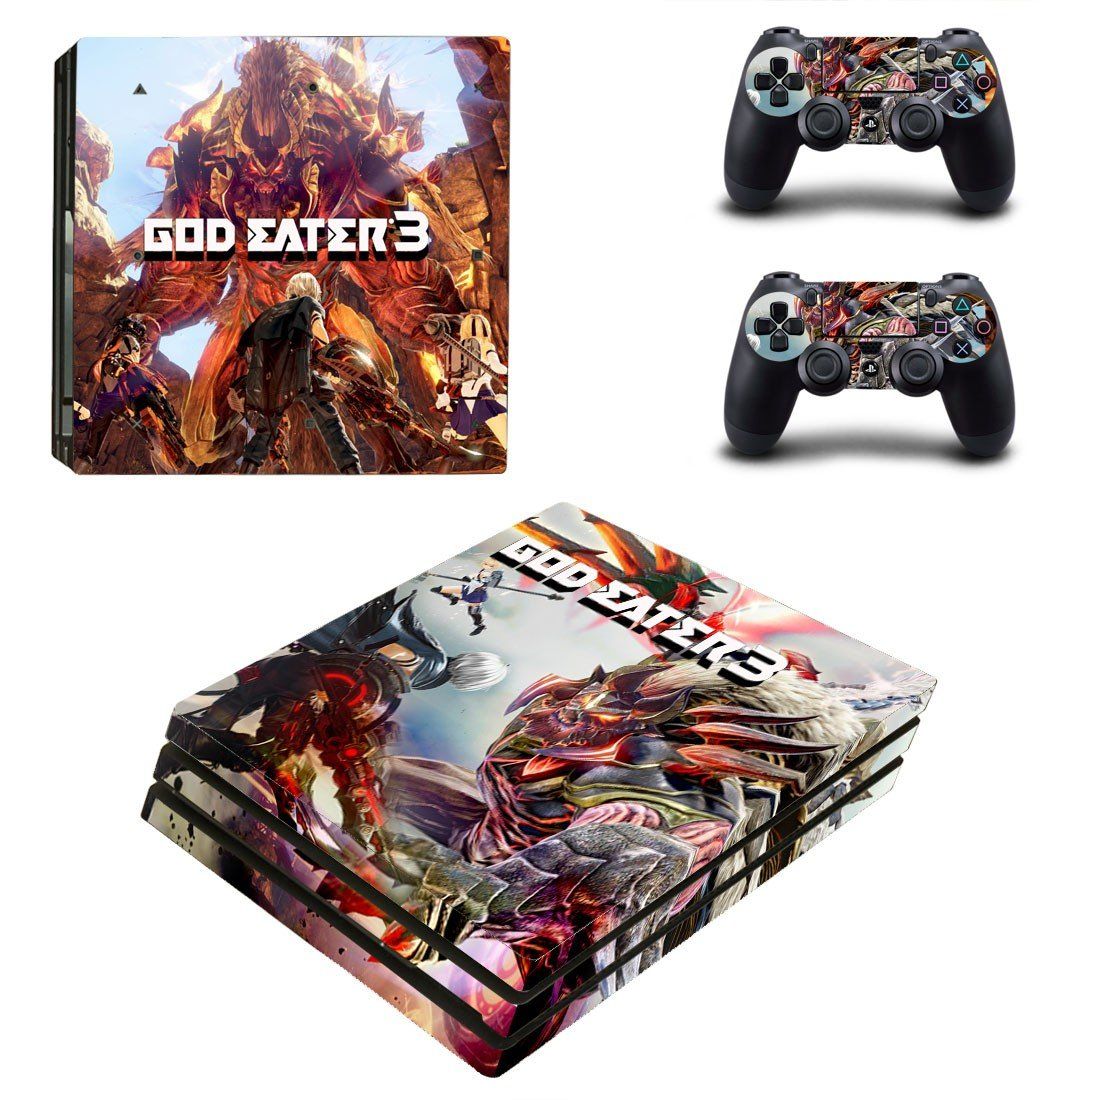 God Eater 3 decal skin sticker for PS4 Pro console and controllers